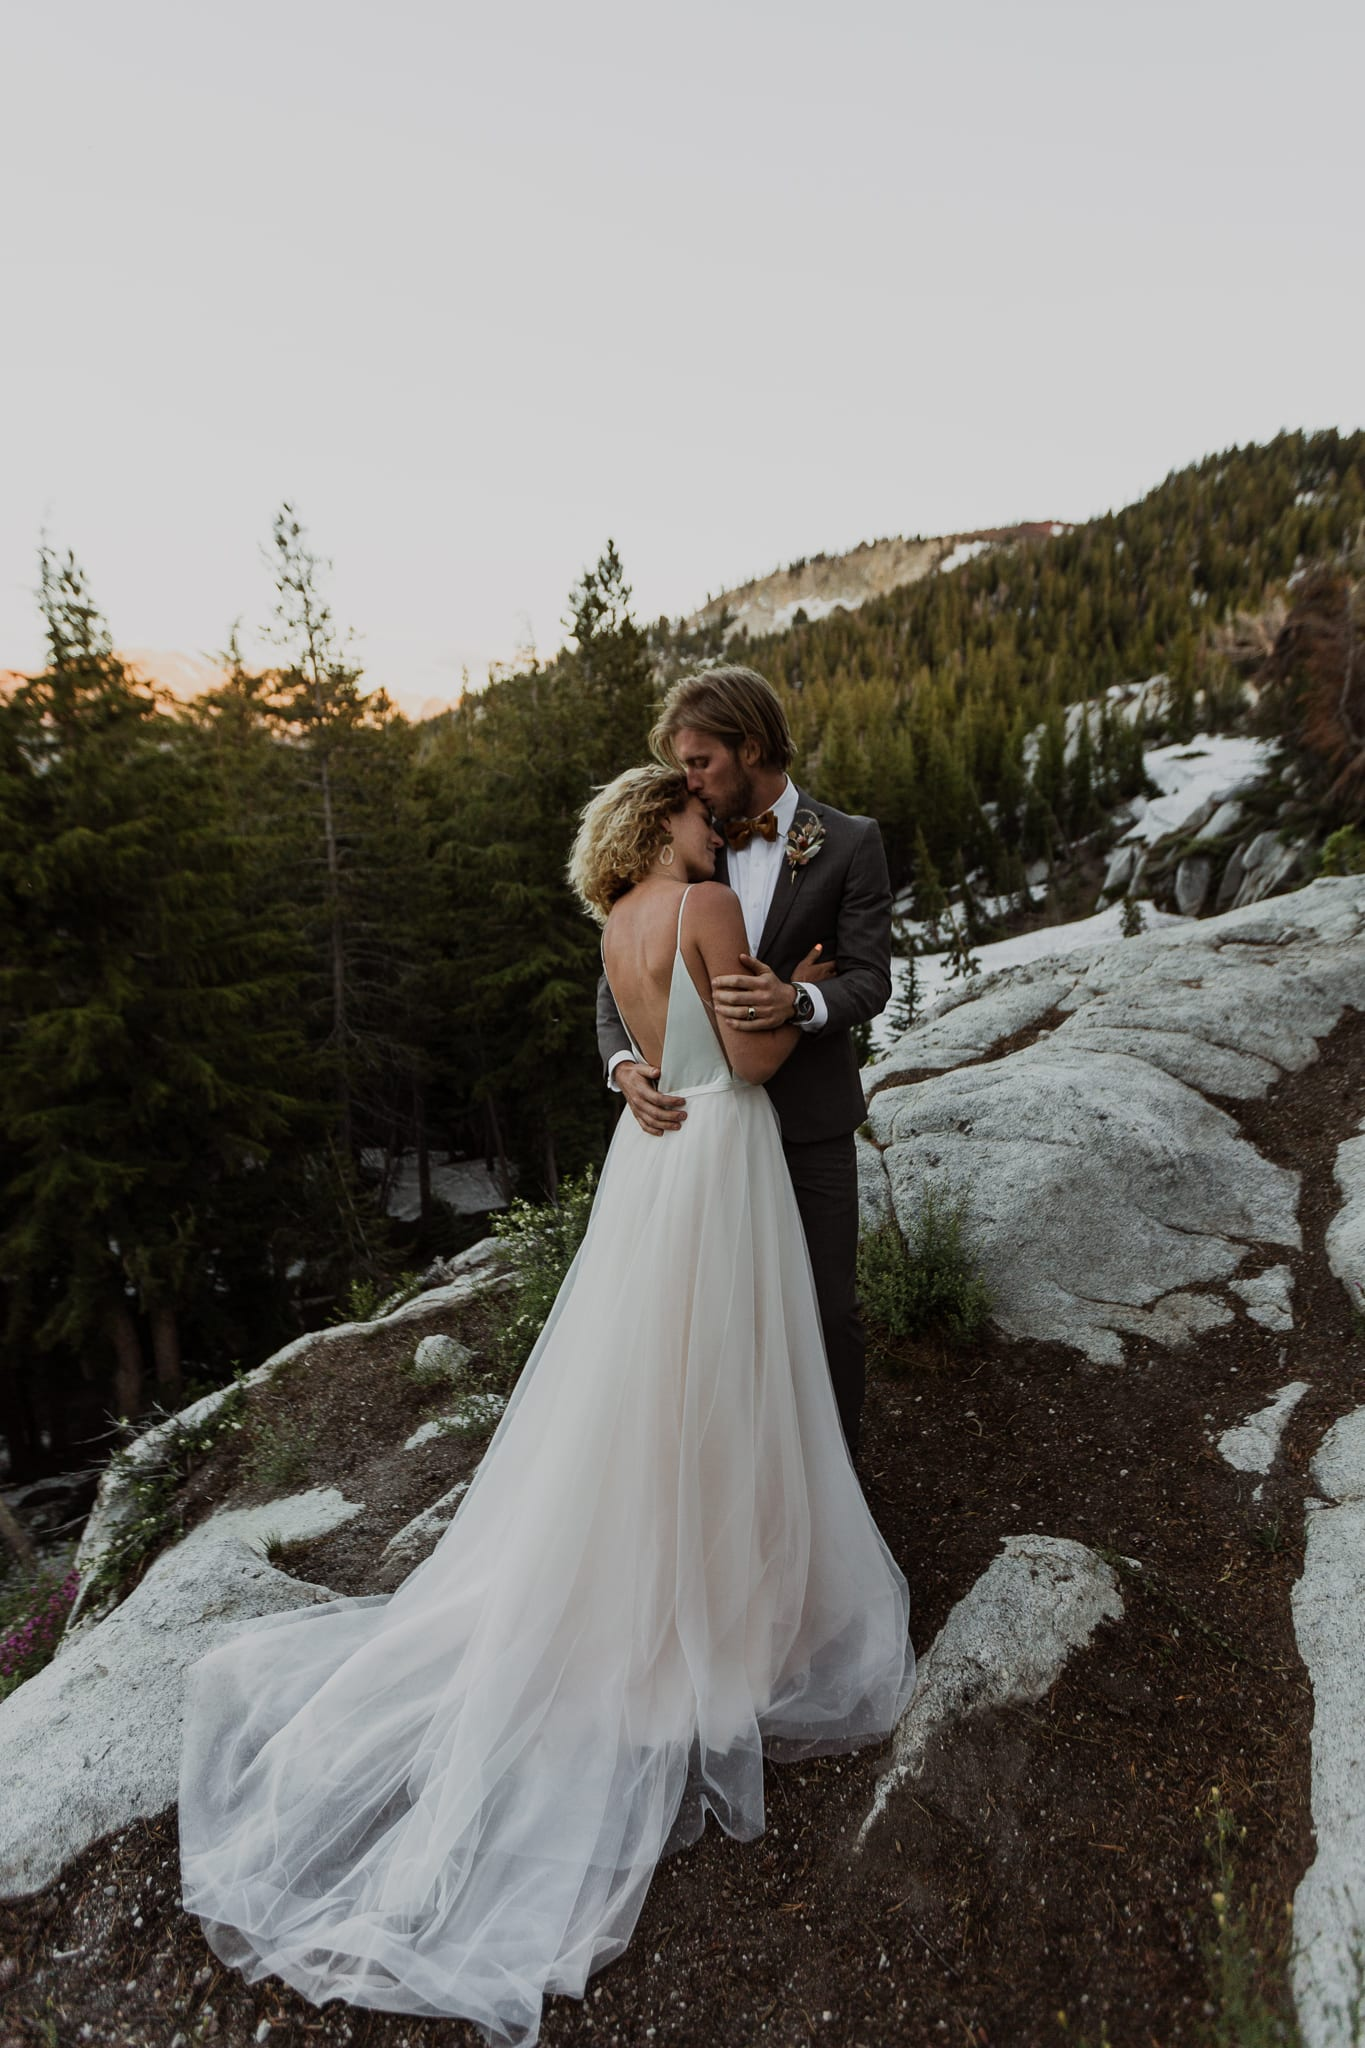 Tyler kisses Haylee on the forehead as she rests her head on his chest. They're standing on rocks overlooking the Mammoth Valley.